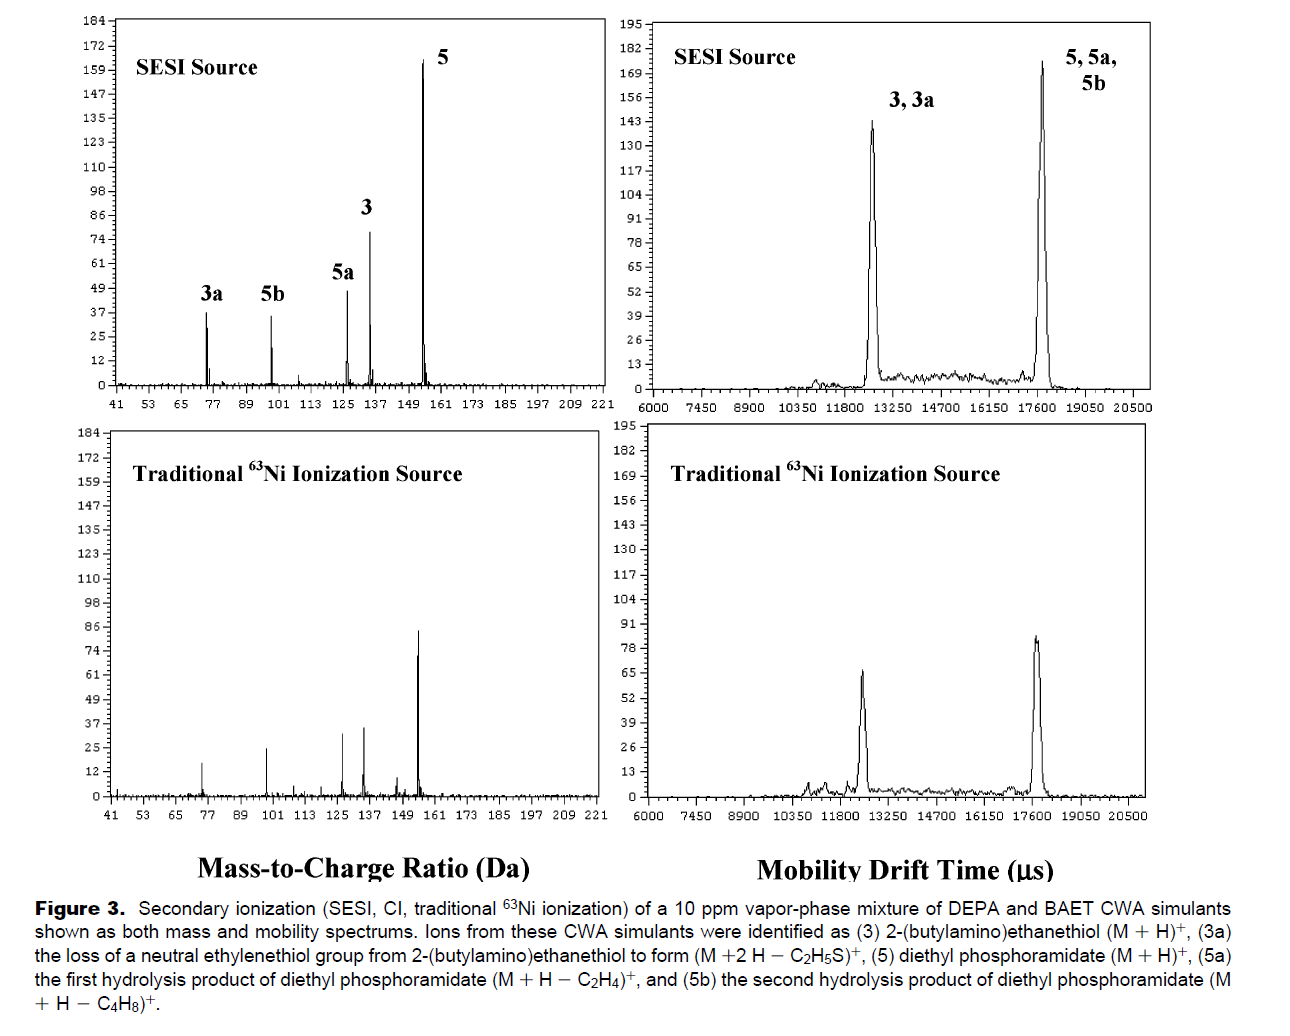 Secondary Ionization of Chemical Warfare Agent Simulants - Atmospheric Pressure Ion Mobility Time-of-Flight Mass Spectrometry.png